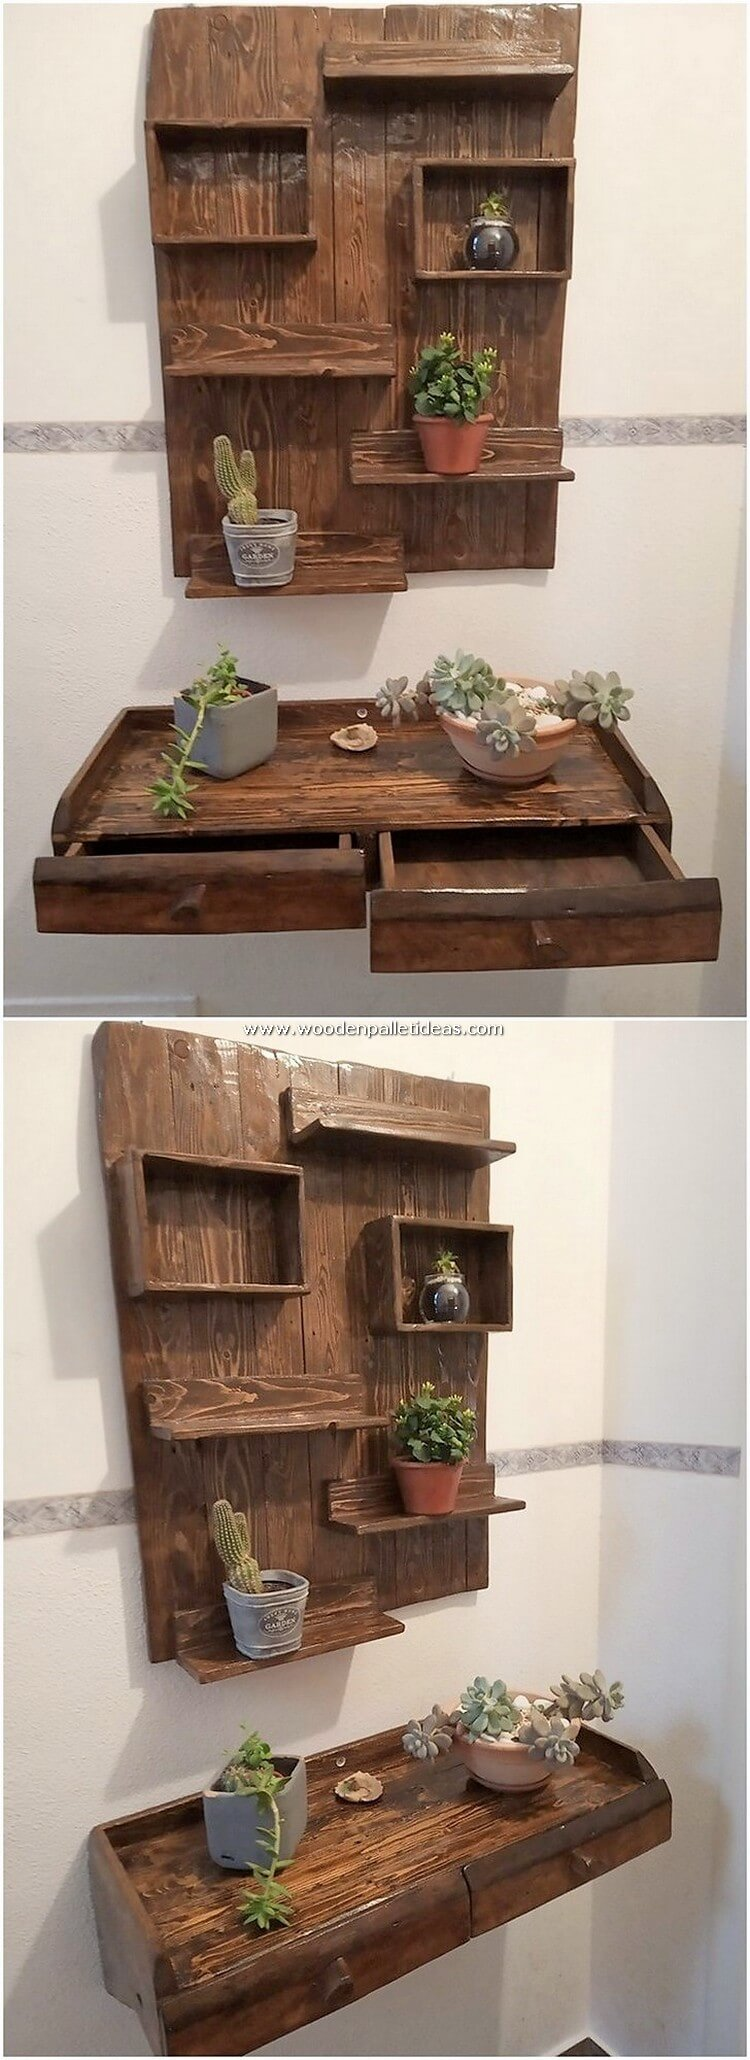 Pallet Wall Shelf and Desk with Drawers